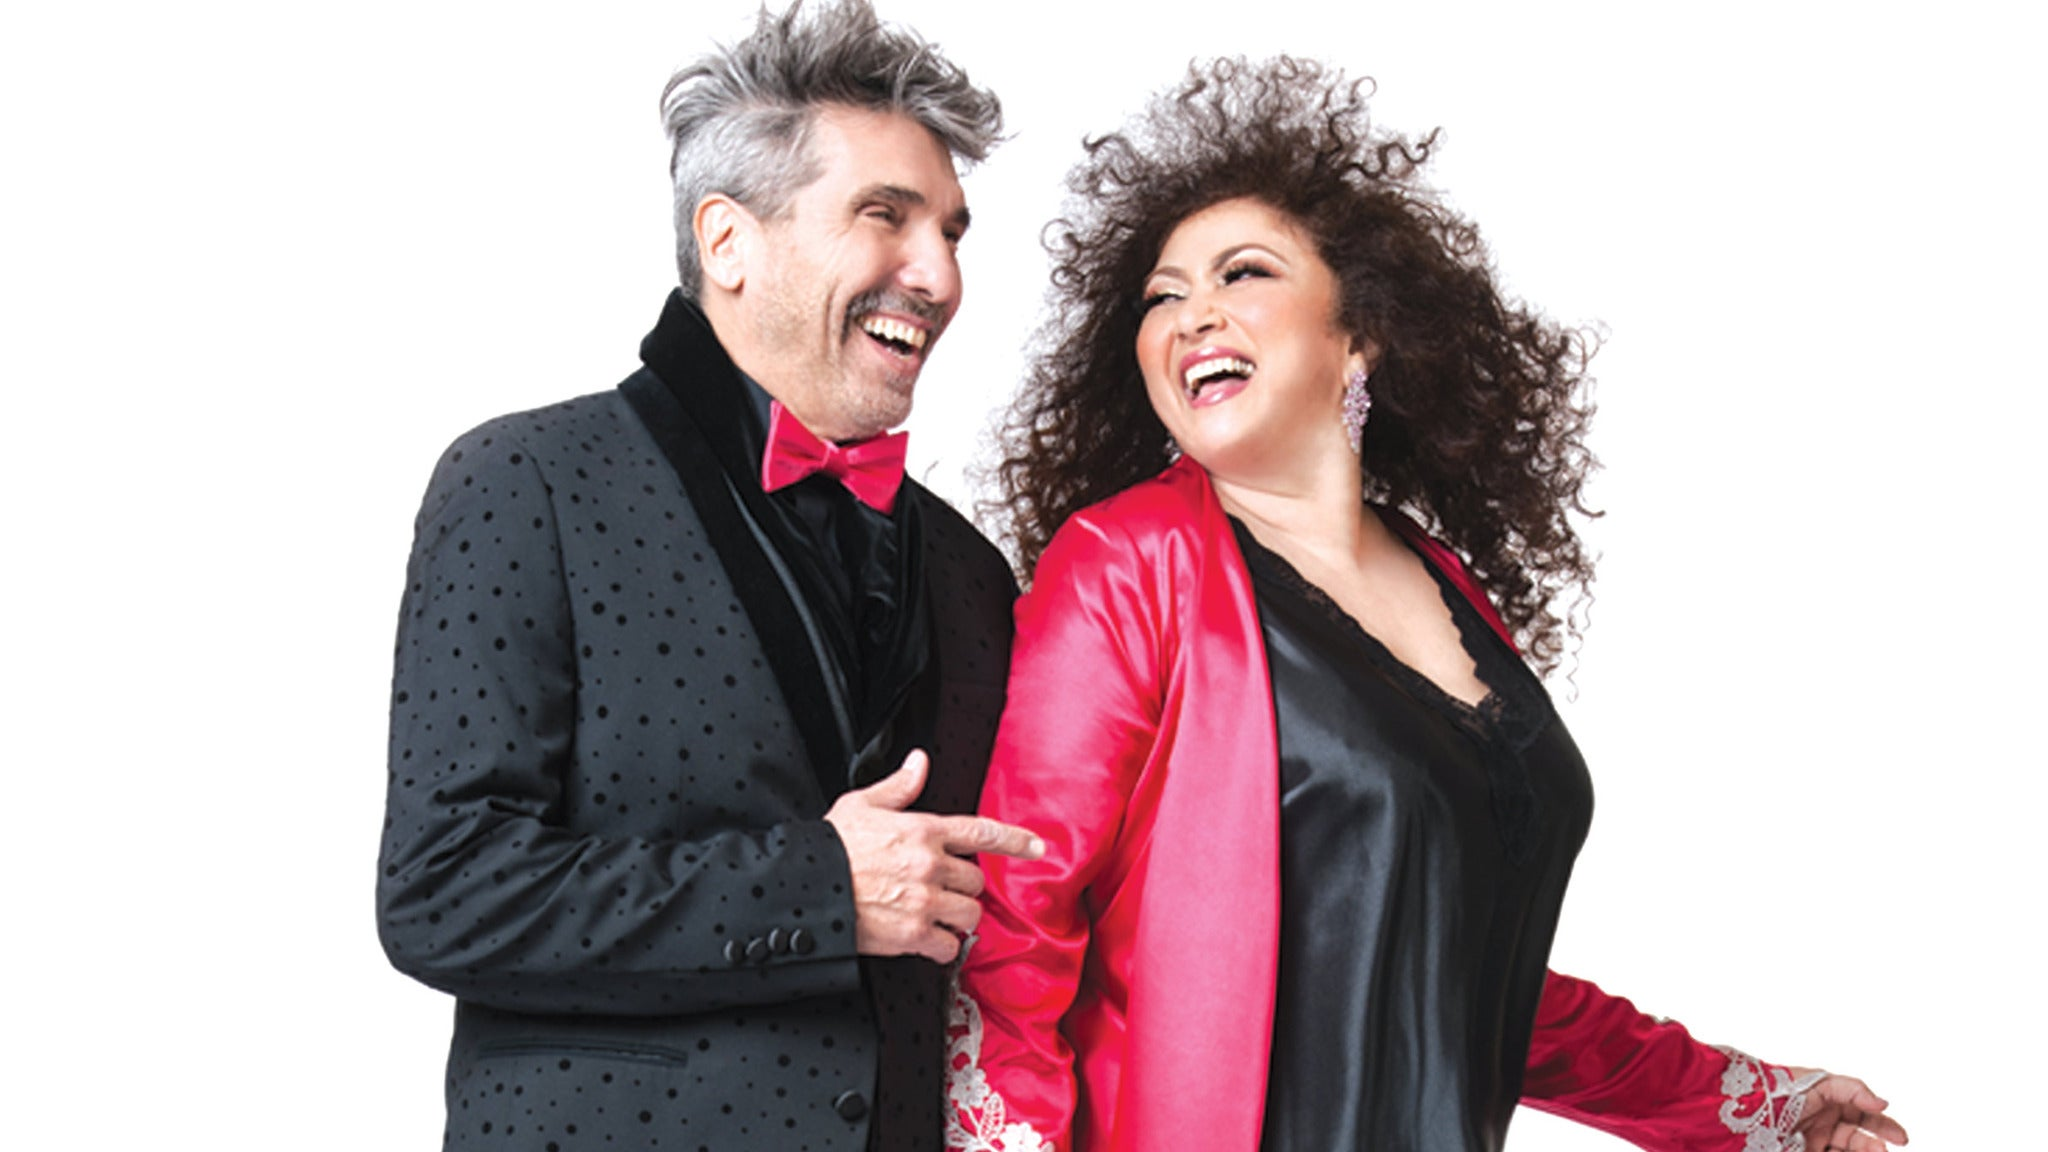 Amanda Miguel Y Diego Verdaguer at Royce Hall - UCLA